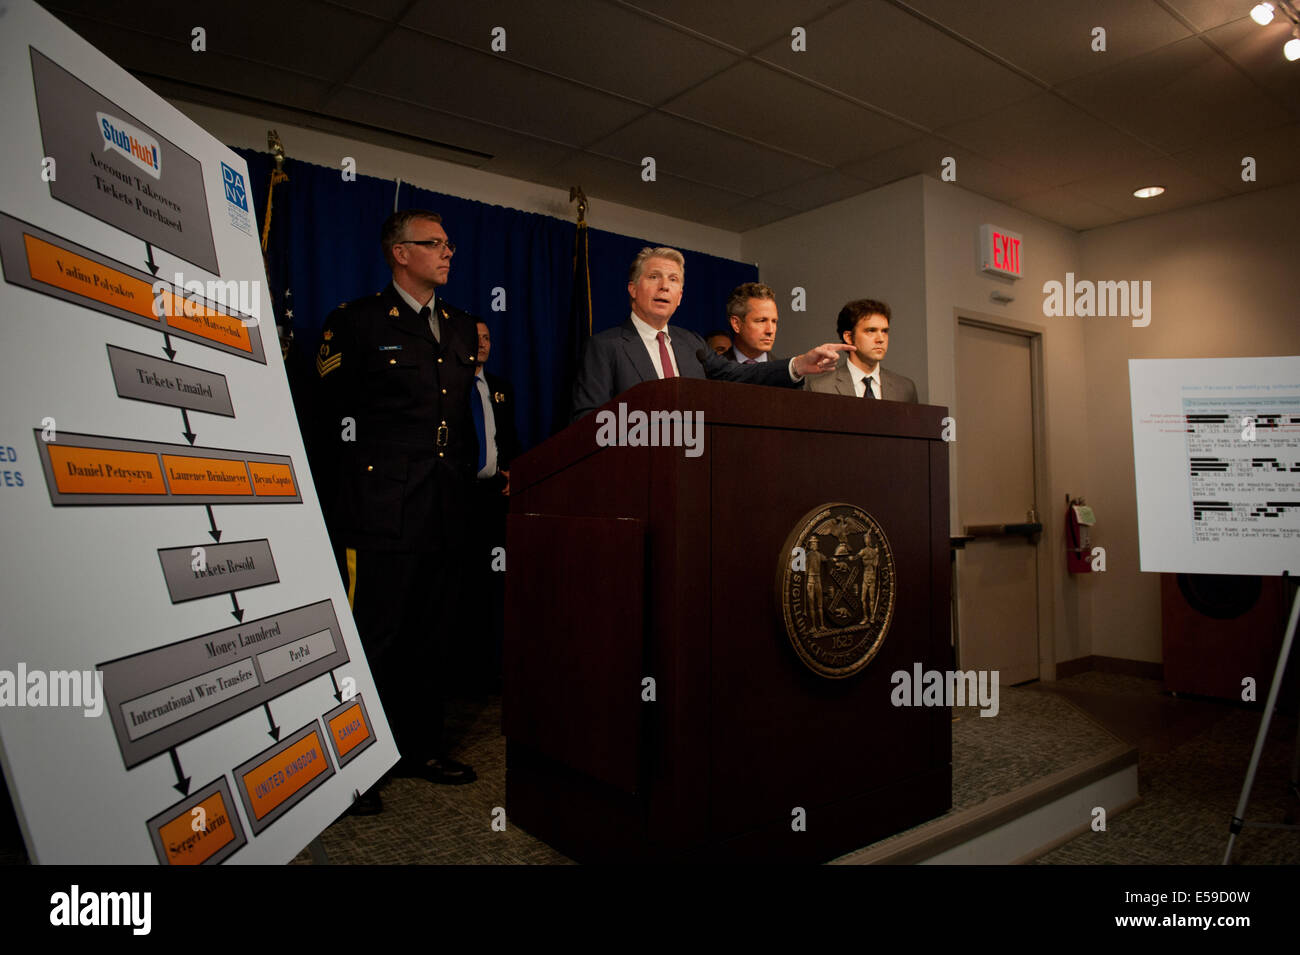 Manhattan, New York, USA. 23rd July, 2014. Manhattan District Attorney CYRUS VANCE with other international and - Stock Image